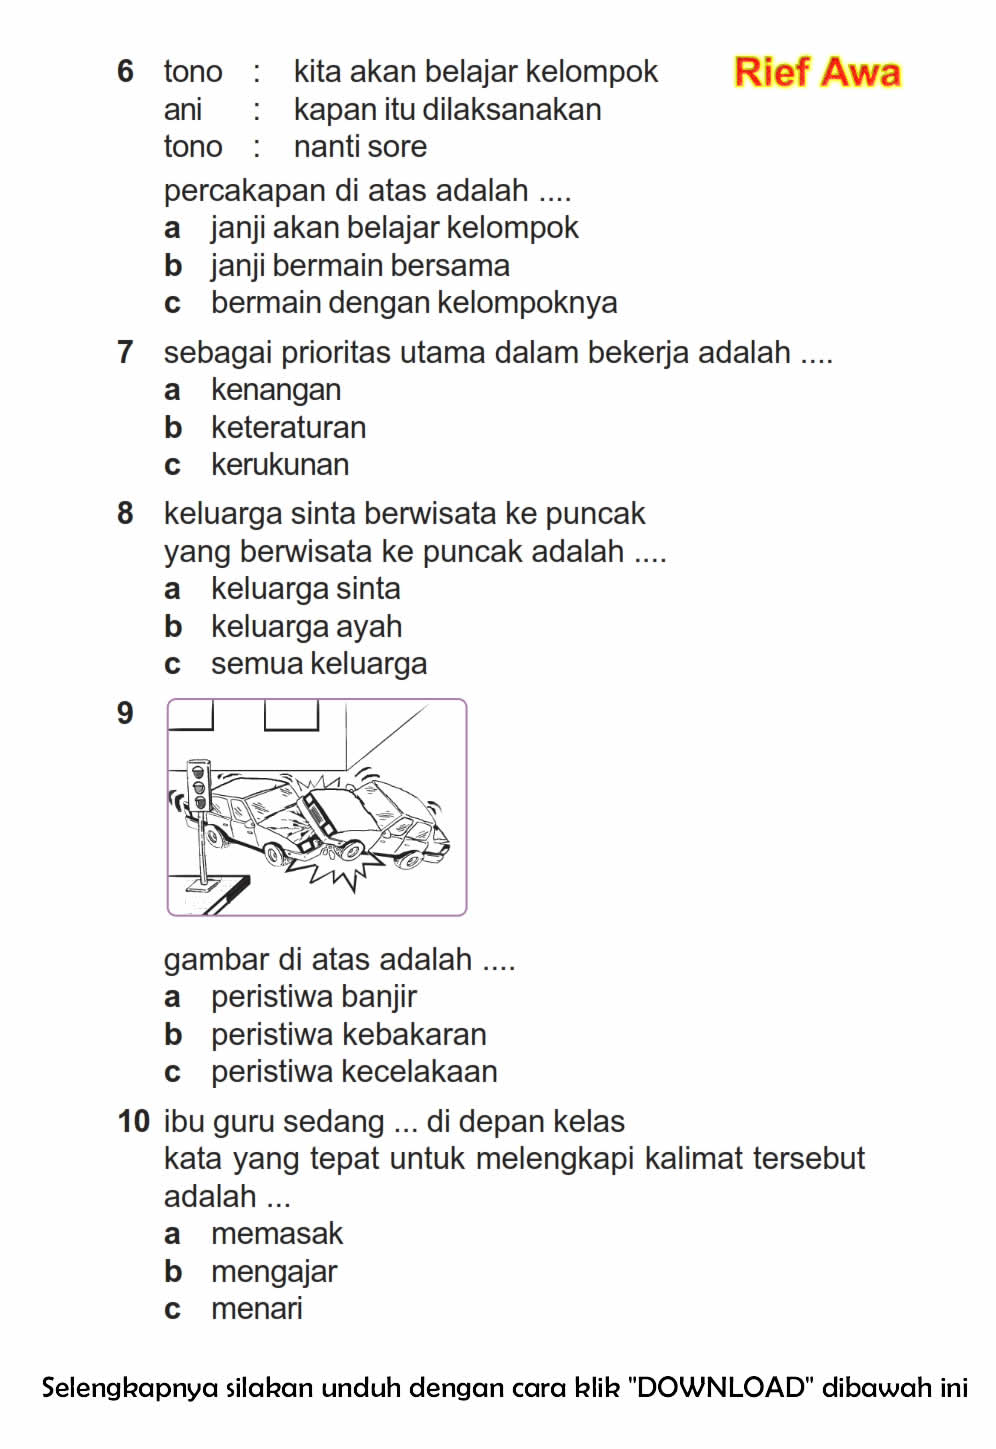 Download Soal Uas Ganjil Bahasa Indonesia Kelas 2 Semester 1 2015 2016 Rief Awa Blog